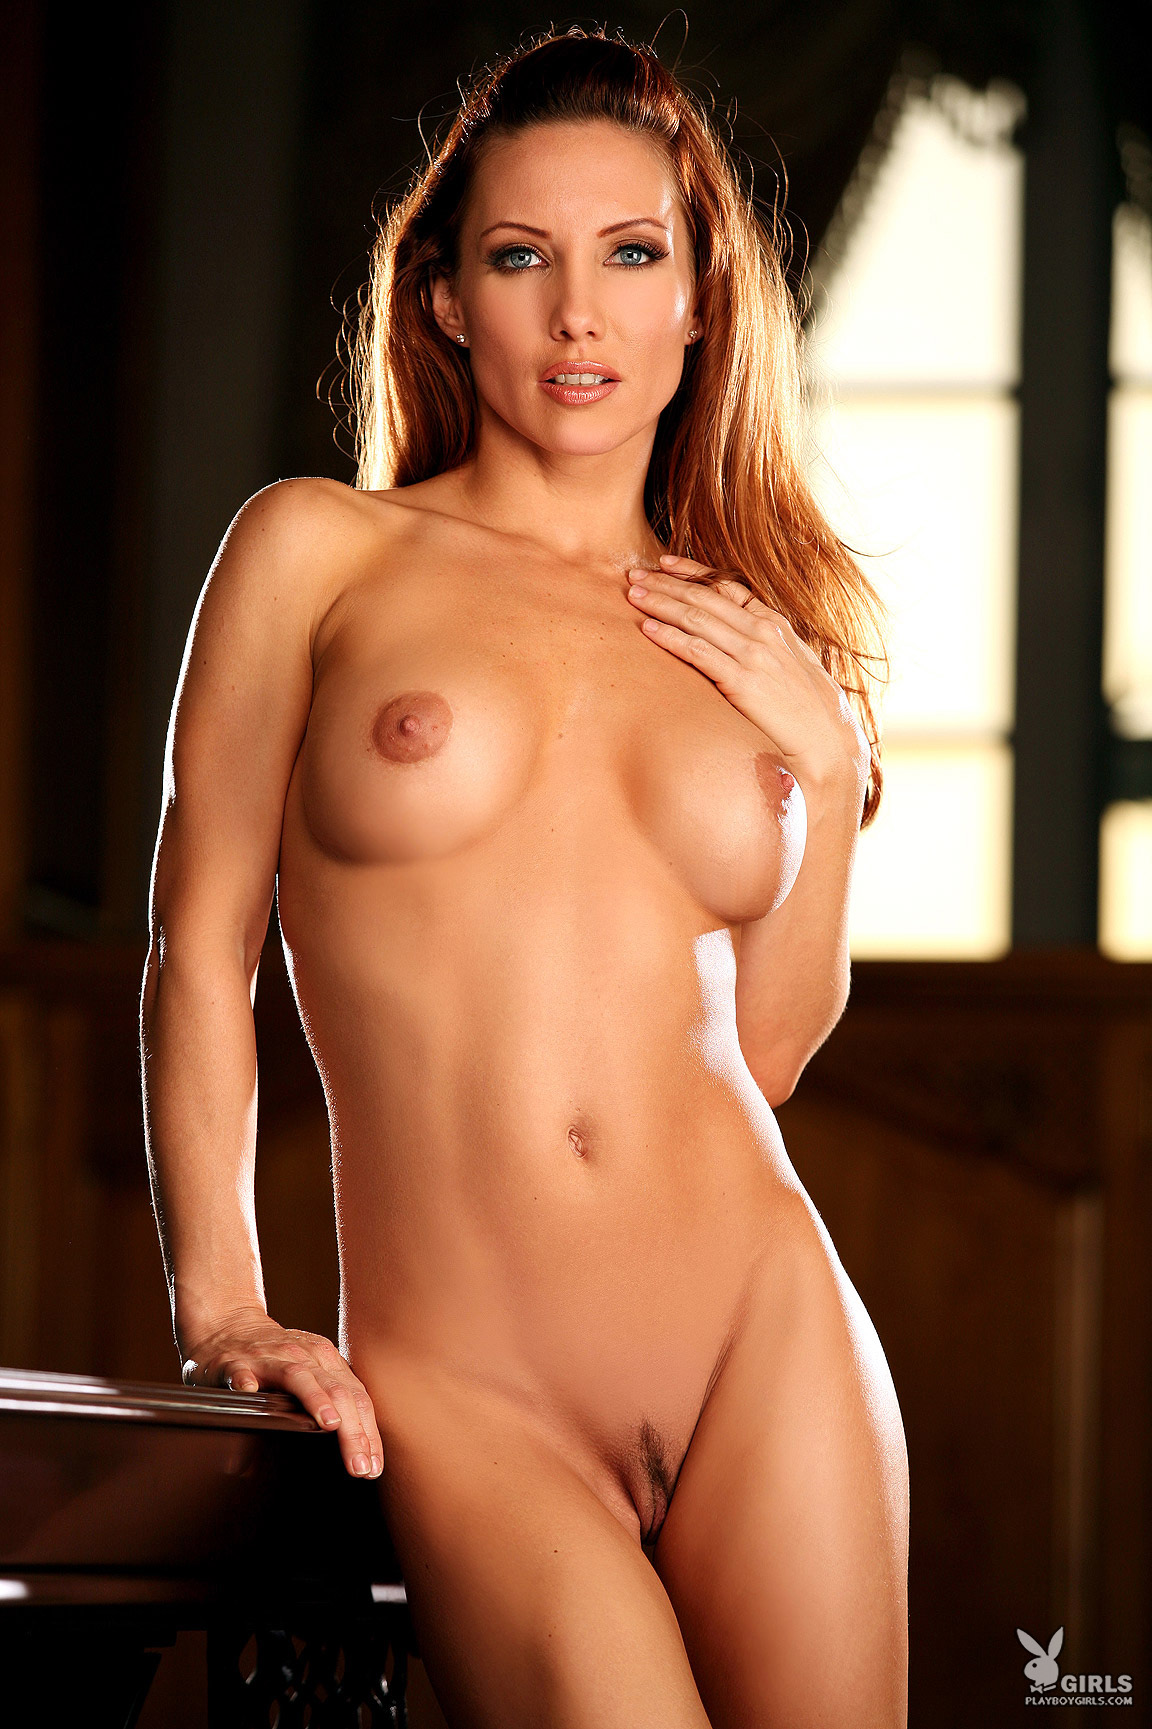 pornstars cinemax Redhead on